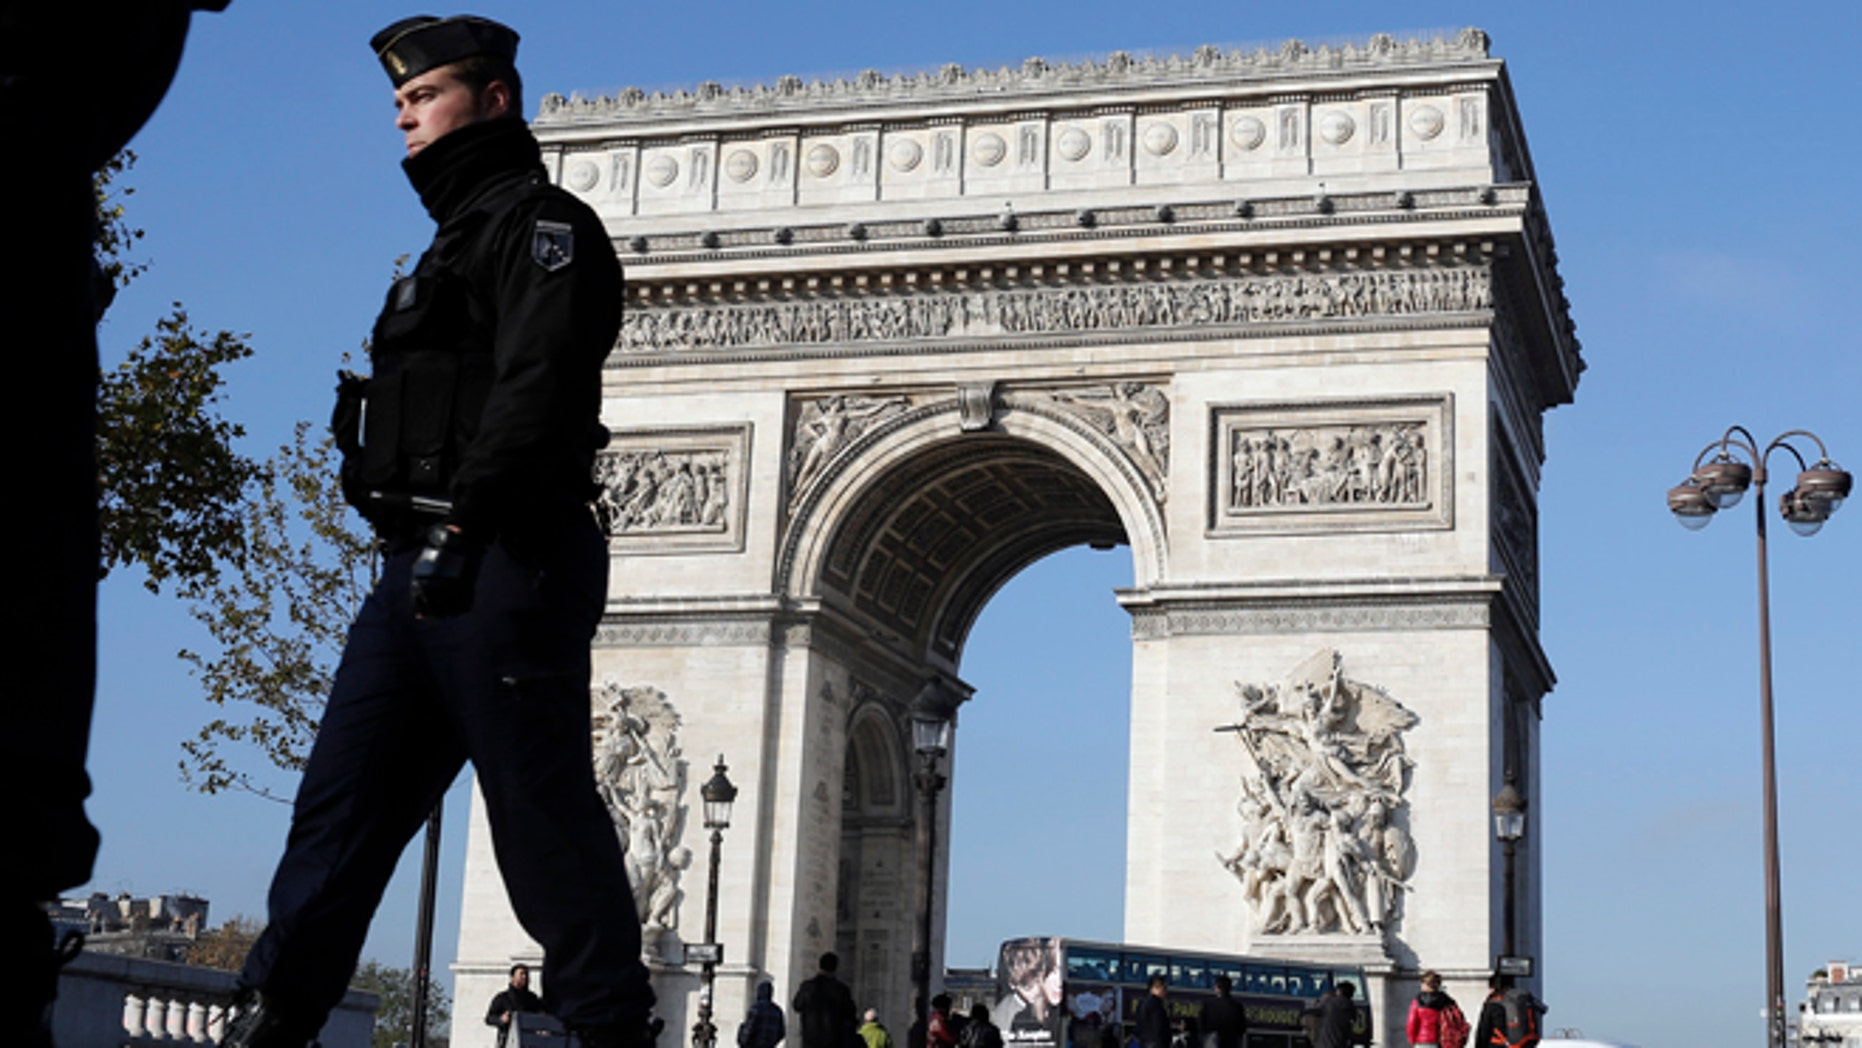 Nov. 23, 2015: A French gendarme officer patrols in front of the Arc de Triomphe, on the Champs Elysees, in Paris.